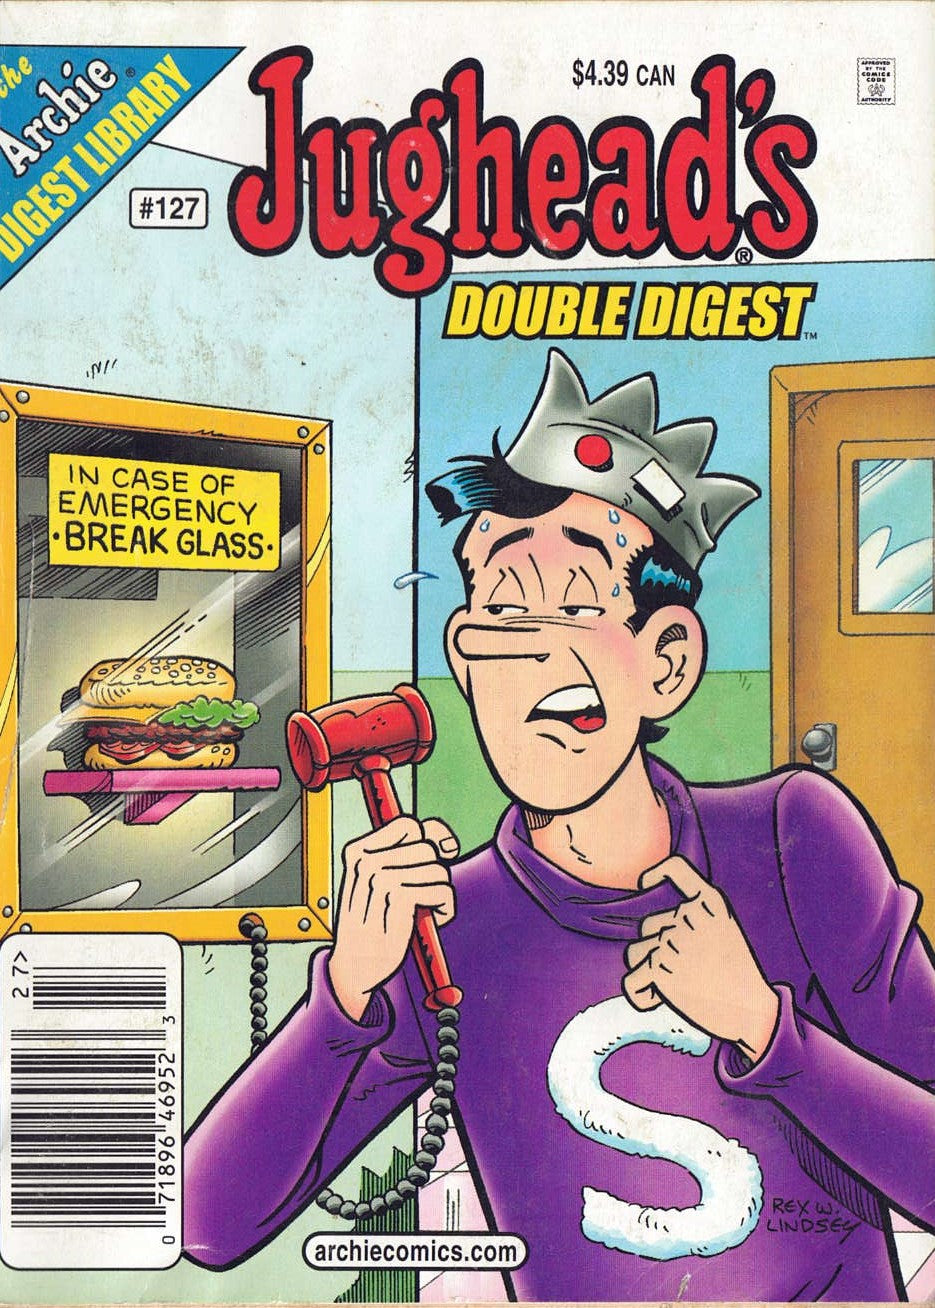 JUGHEAD'S COMICS DOUBLE DIGEST Magazine No. 127 from Archie Comics (2007) - Busy Bee Emporium